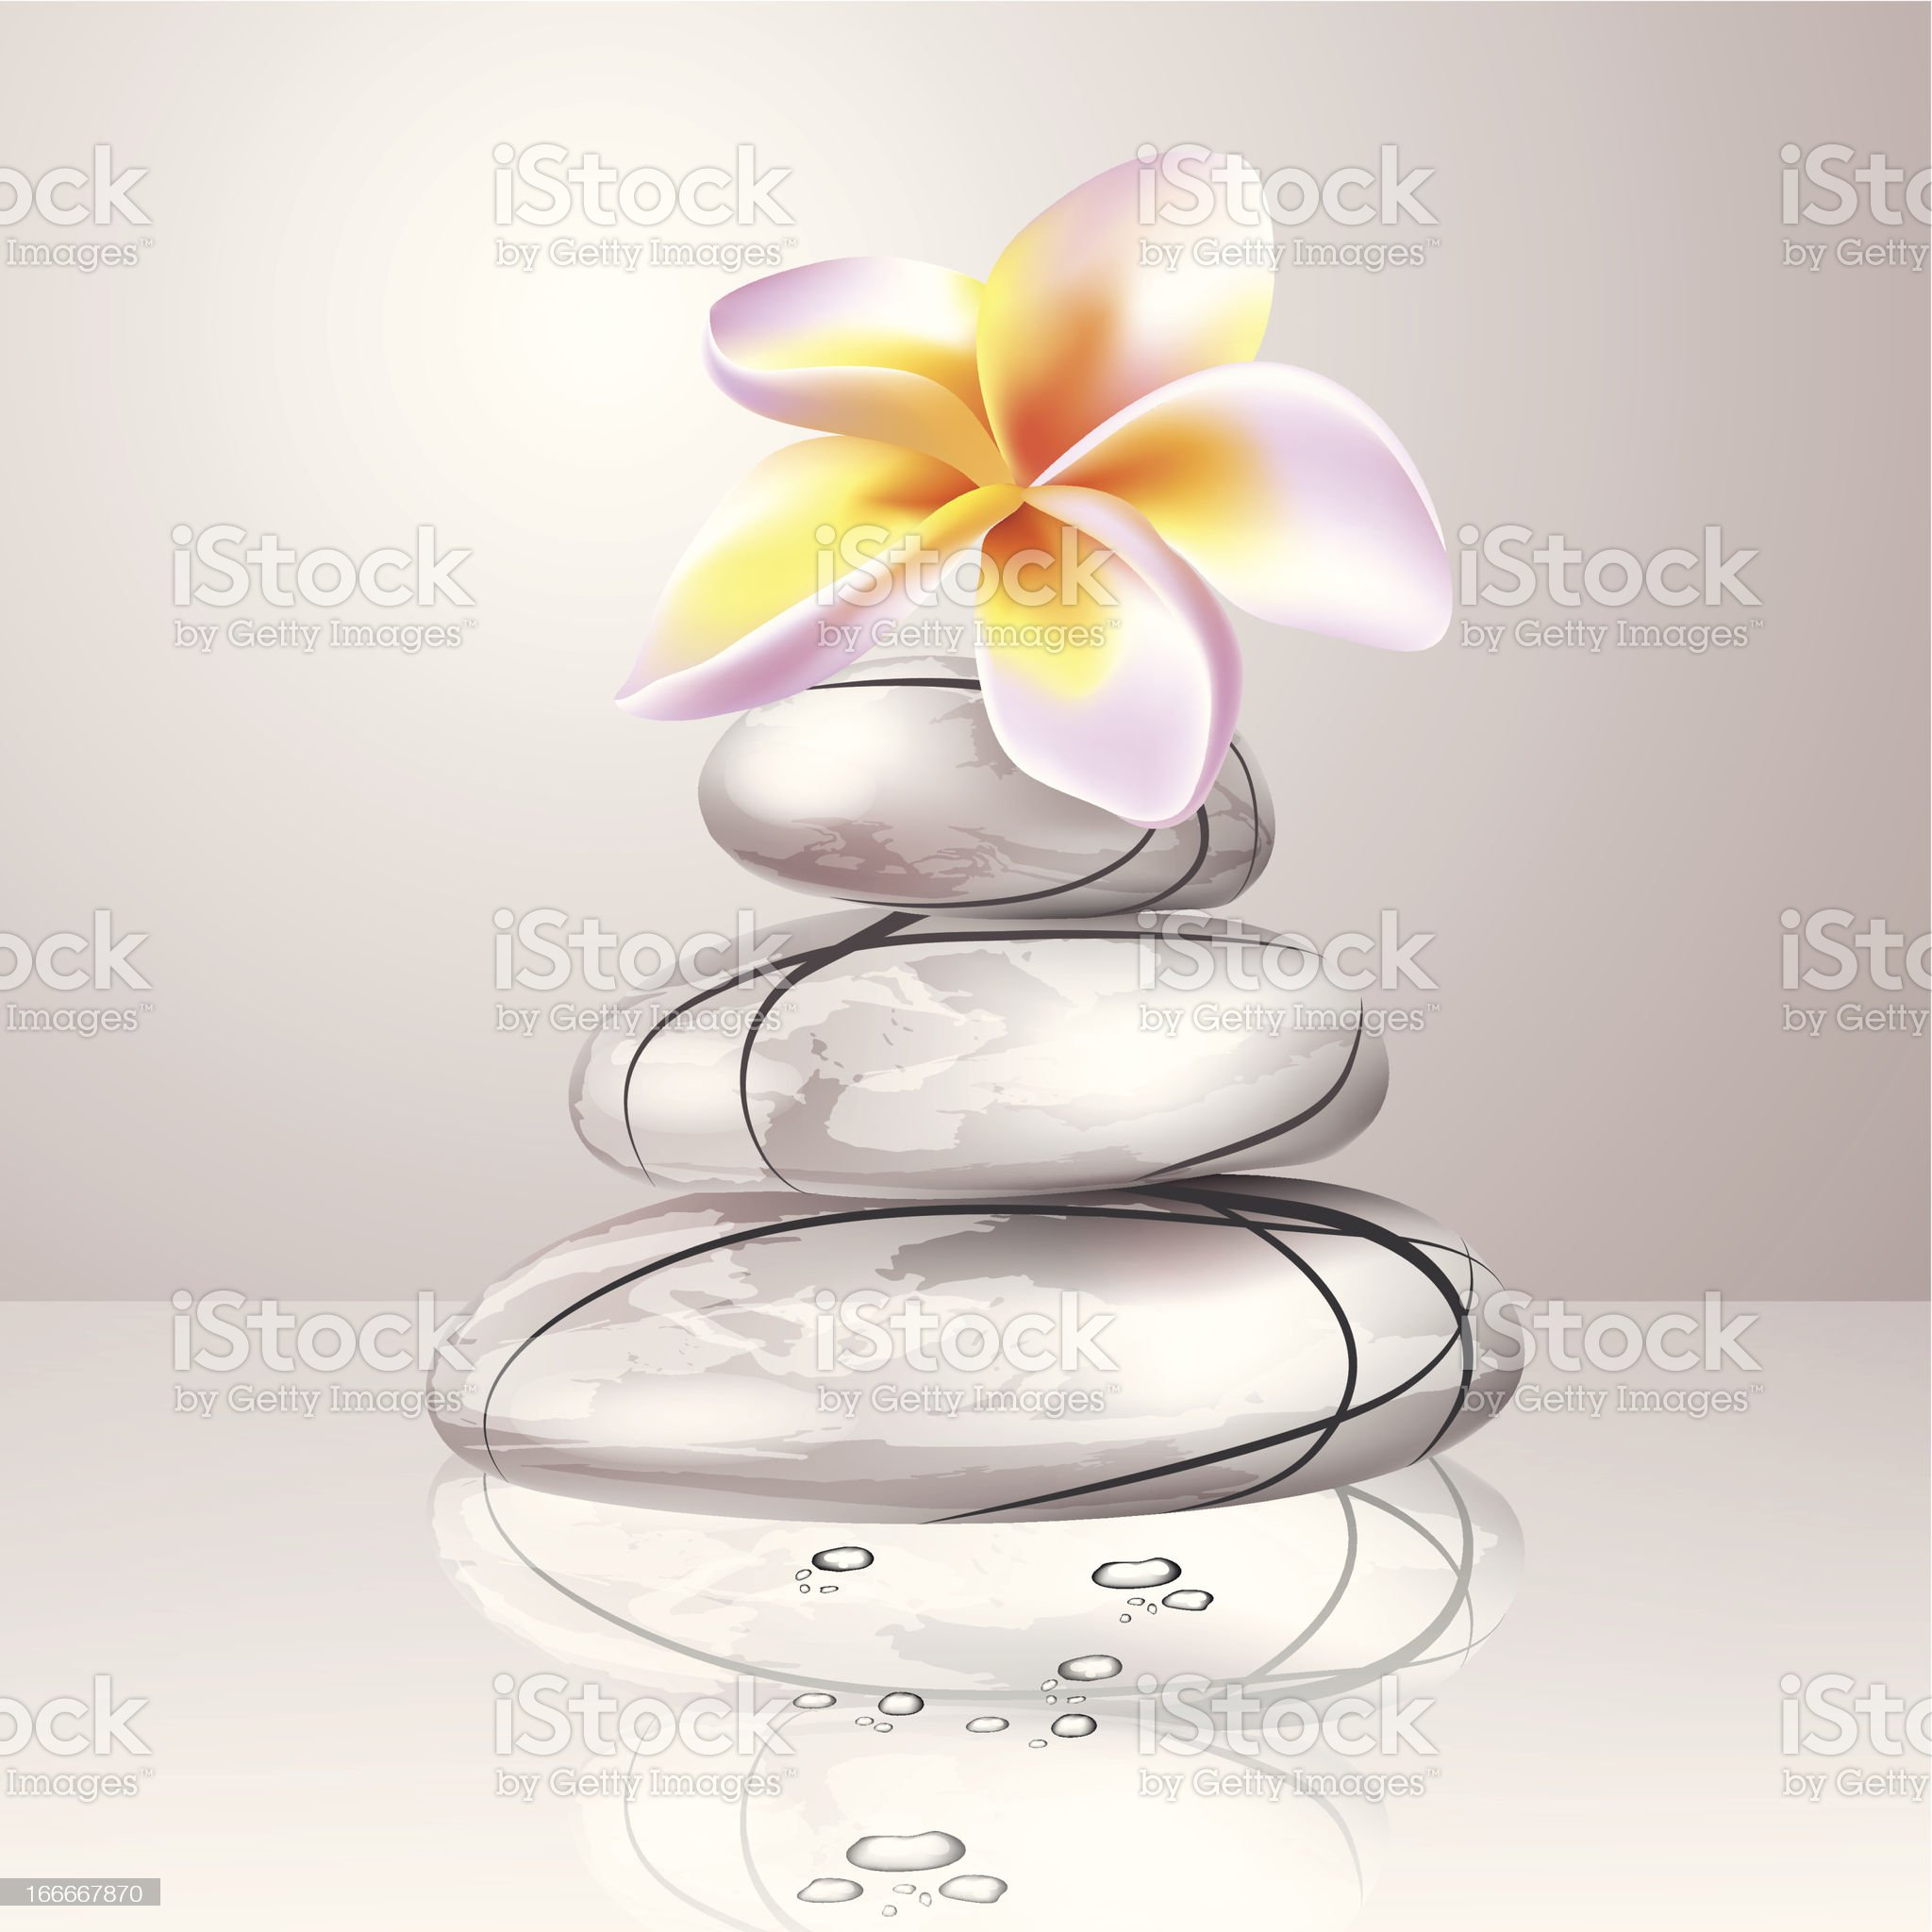 White spa stones with frangipani flower royalty-free stock vector art